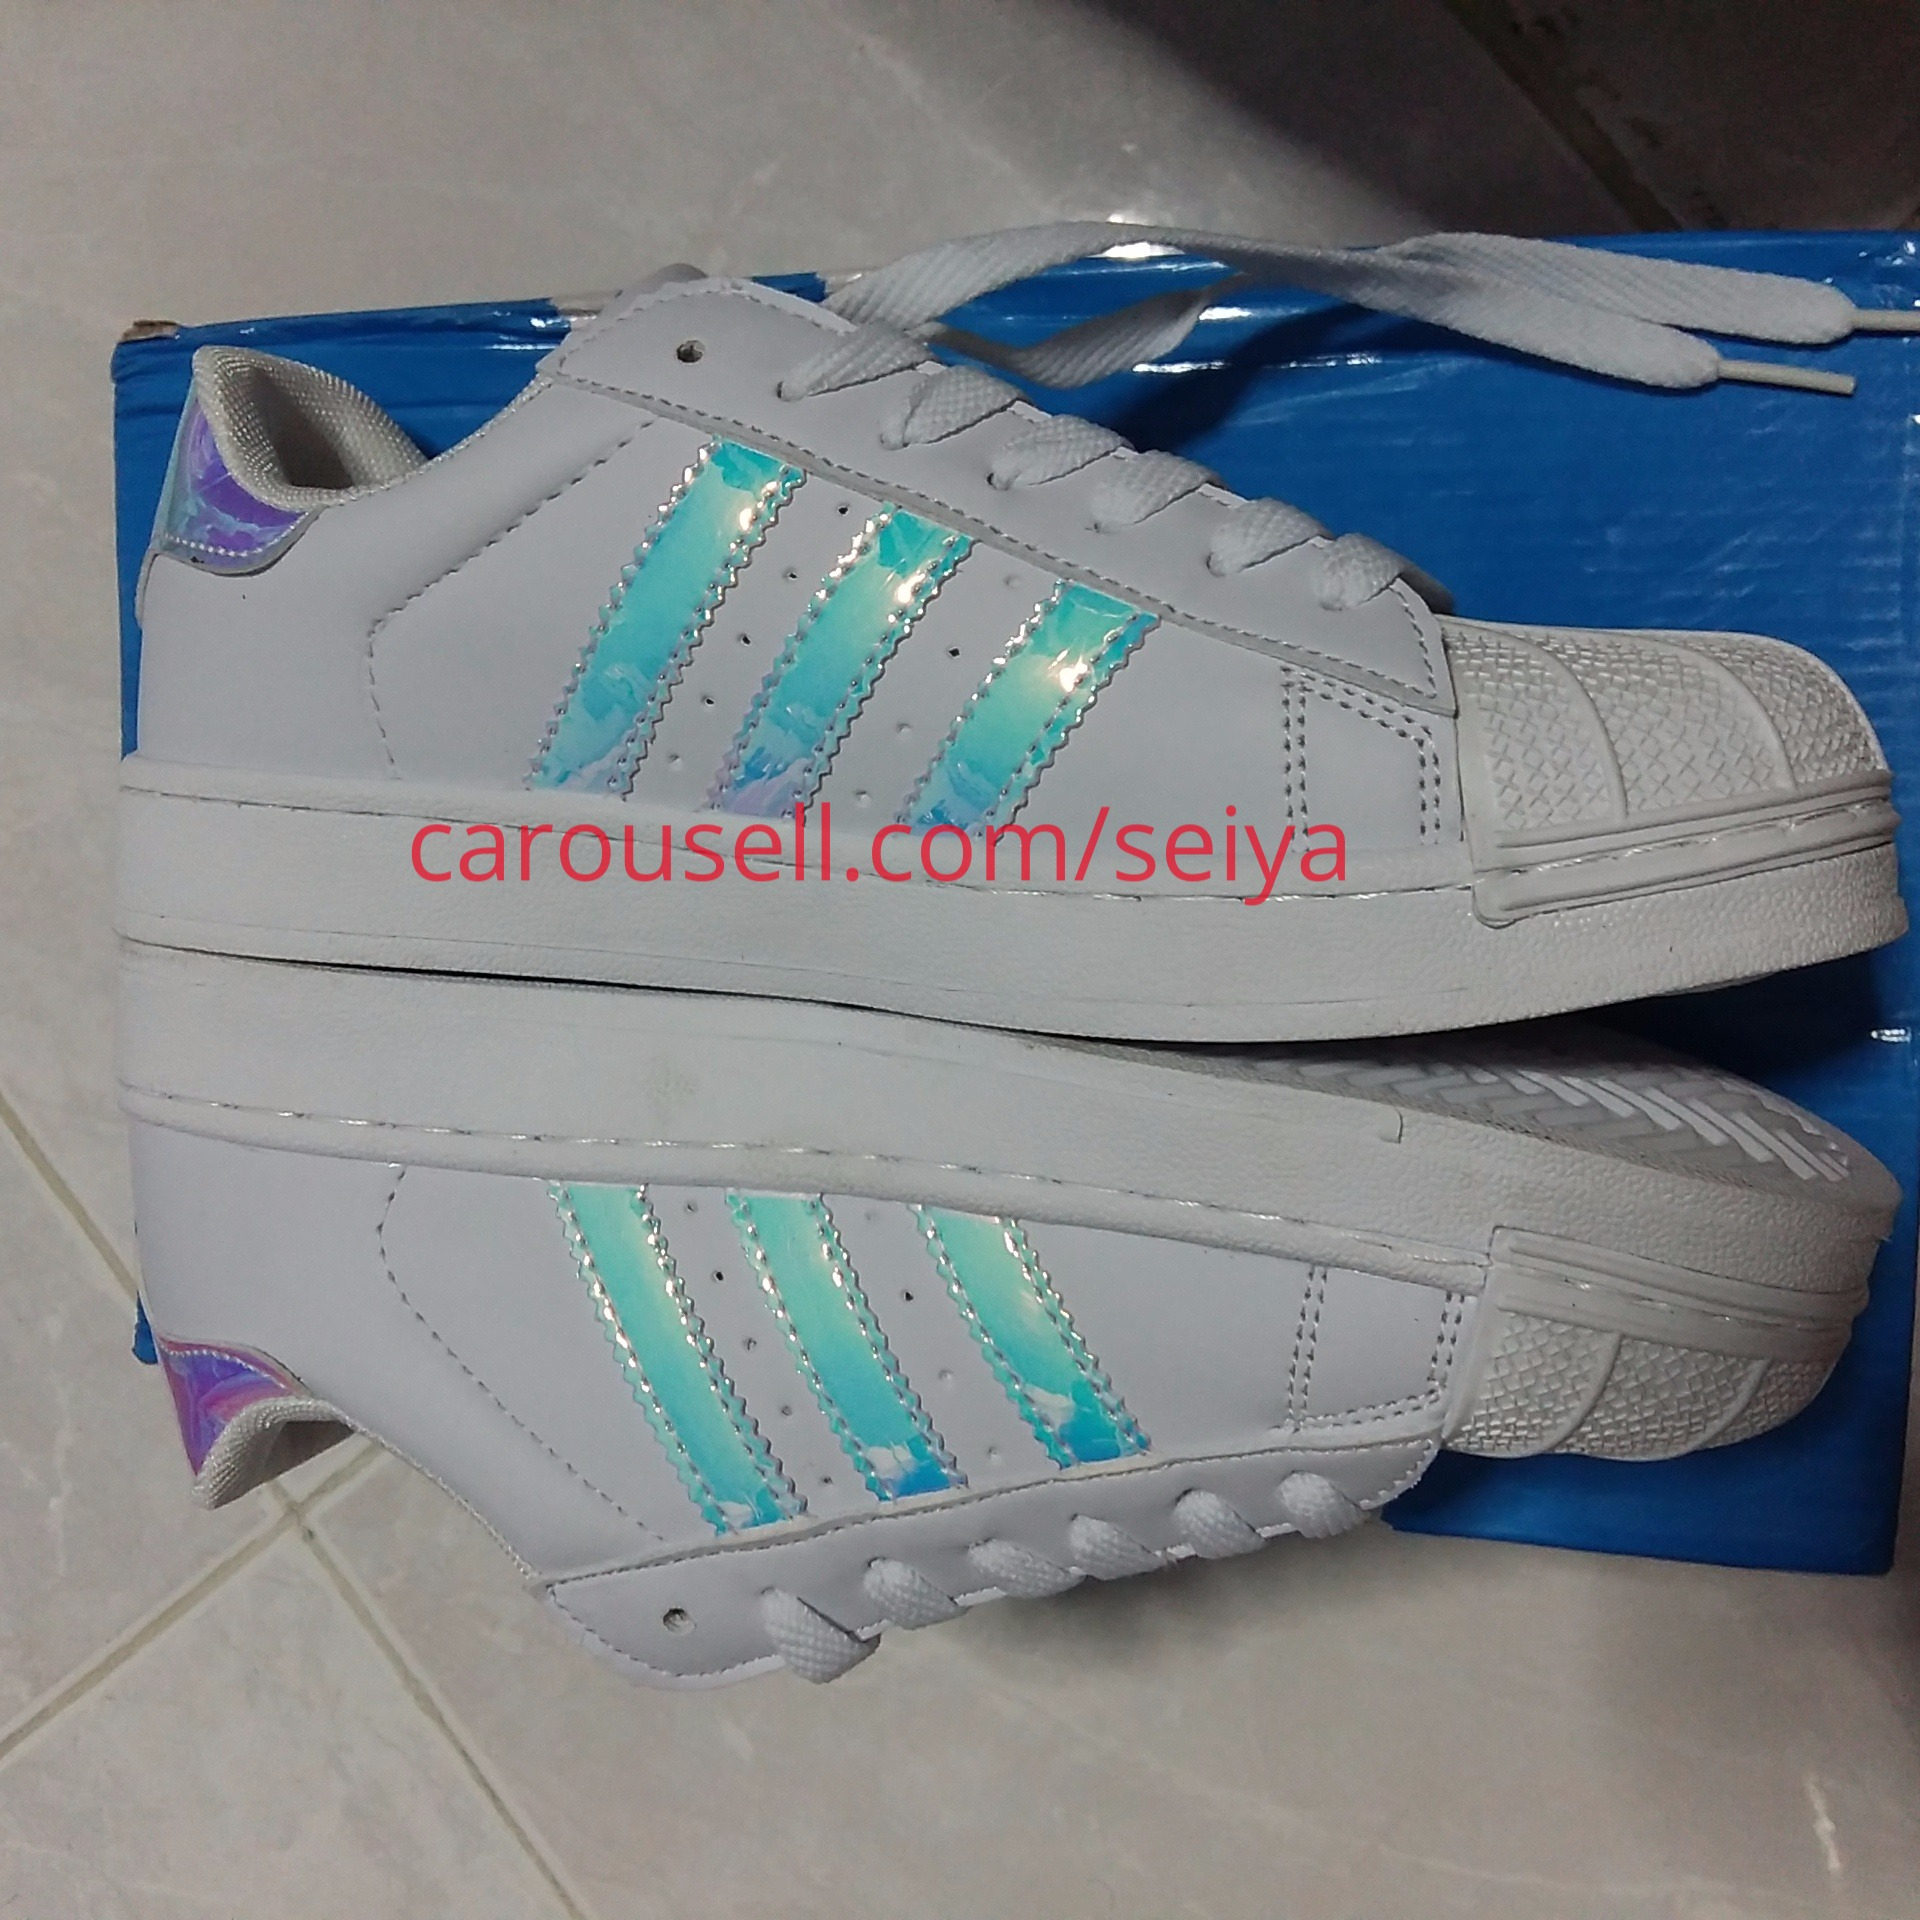 INSTOCK Size 39) Brand New Inspired Adidas Superstar